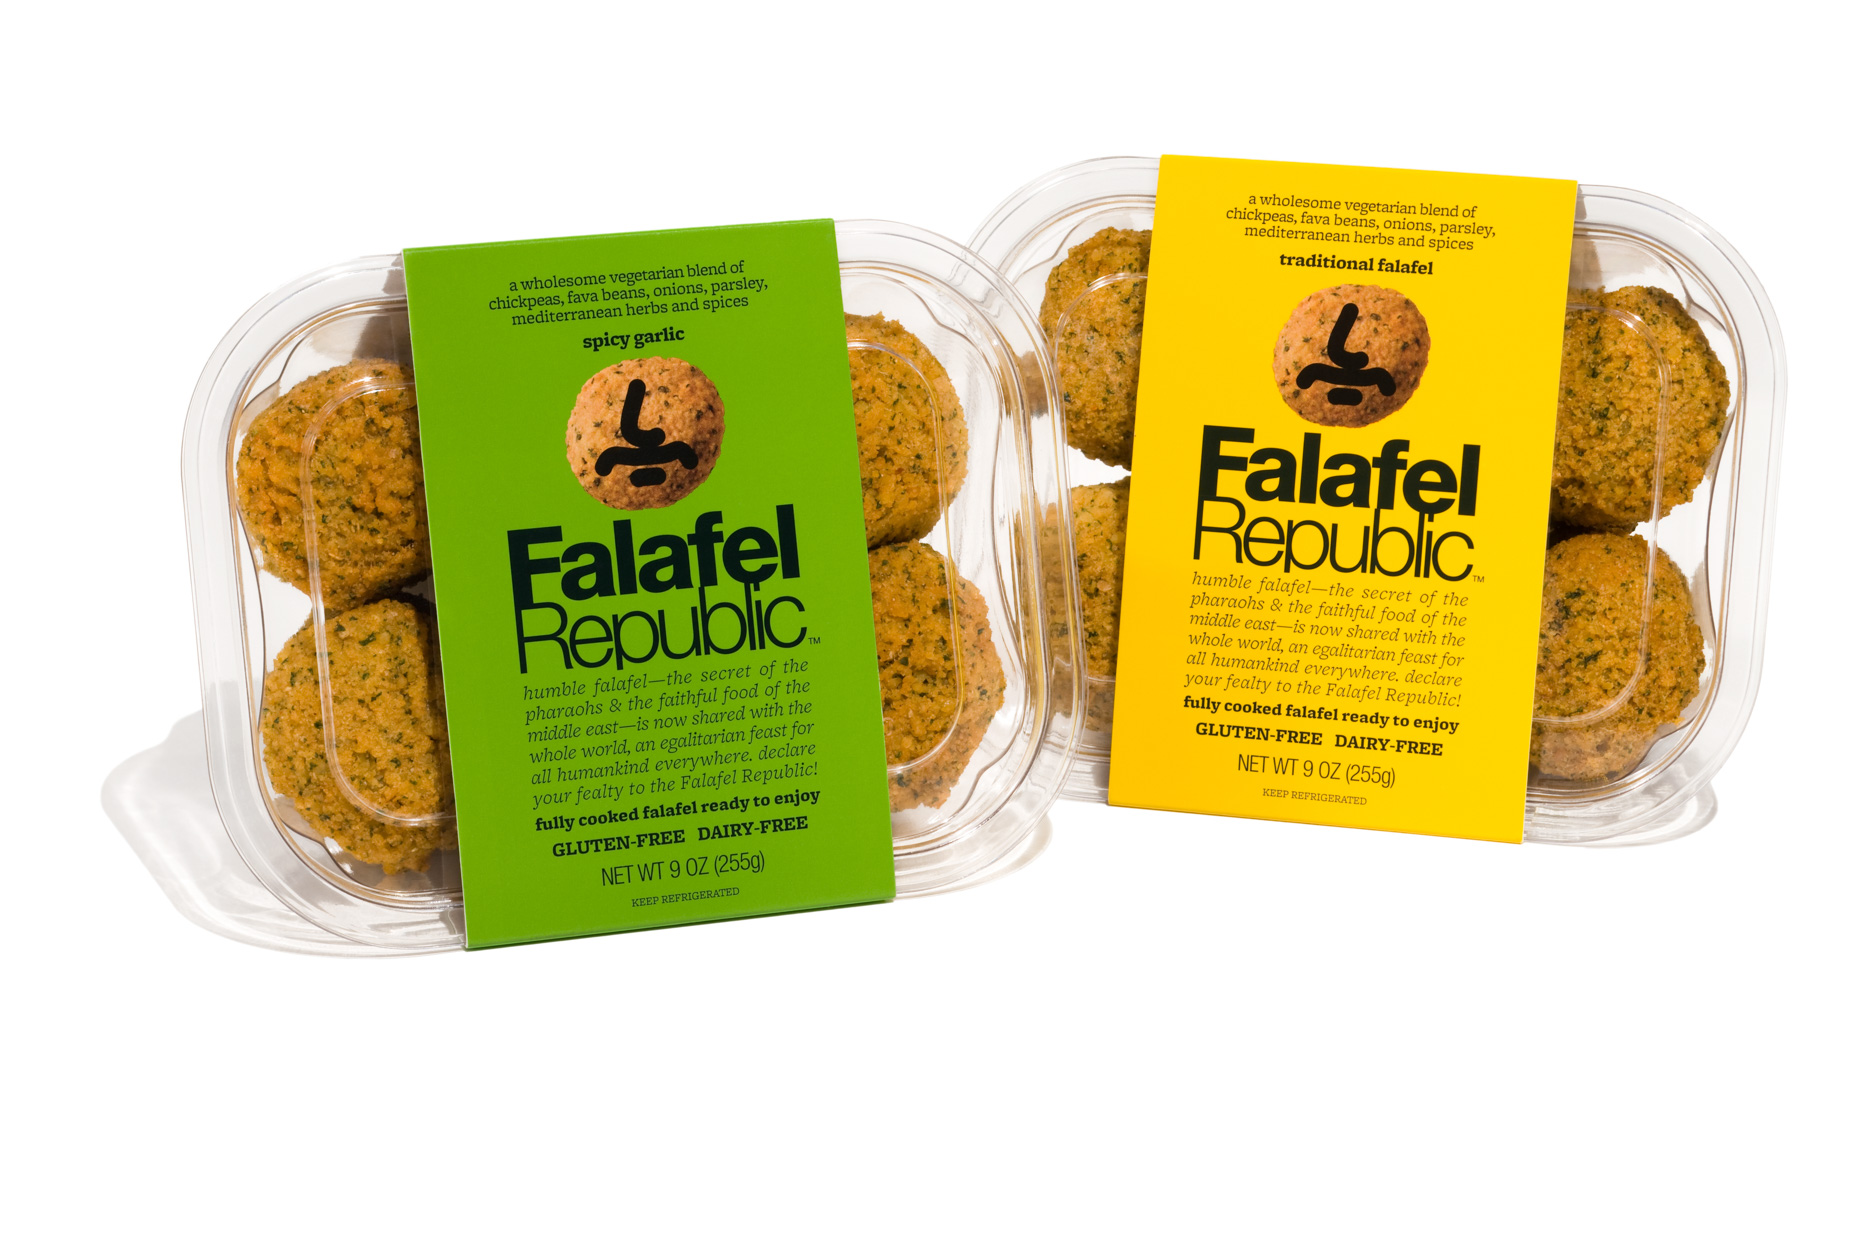 01Falafel_Republic_2packages_2